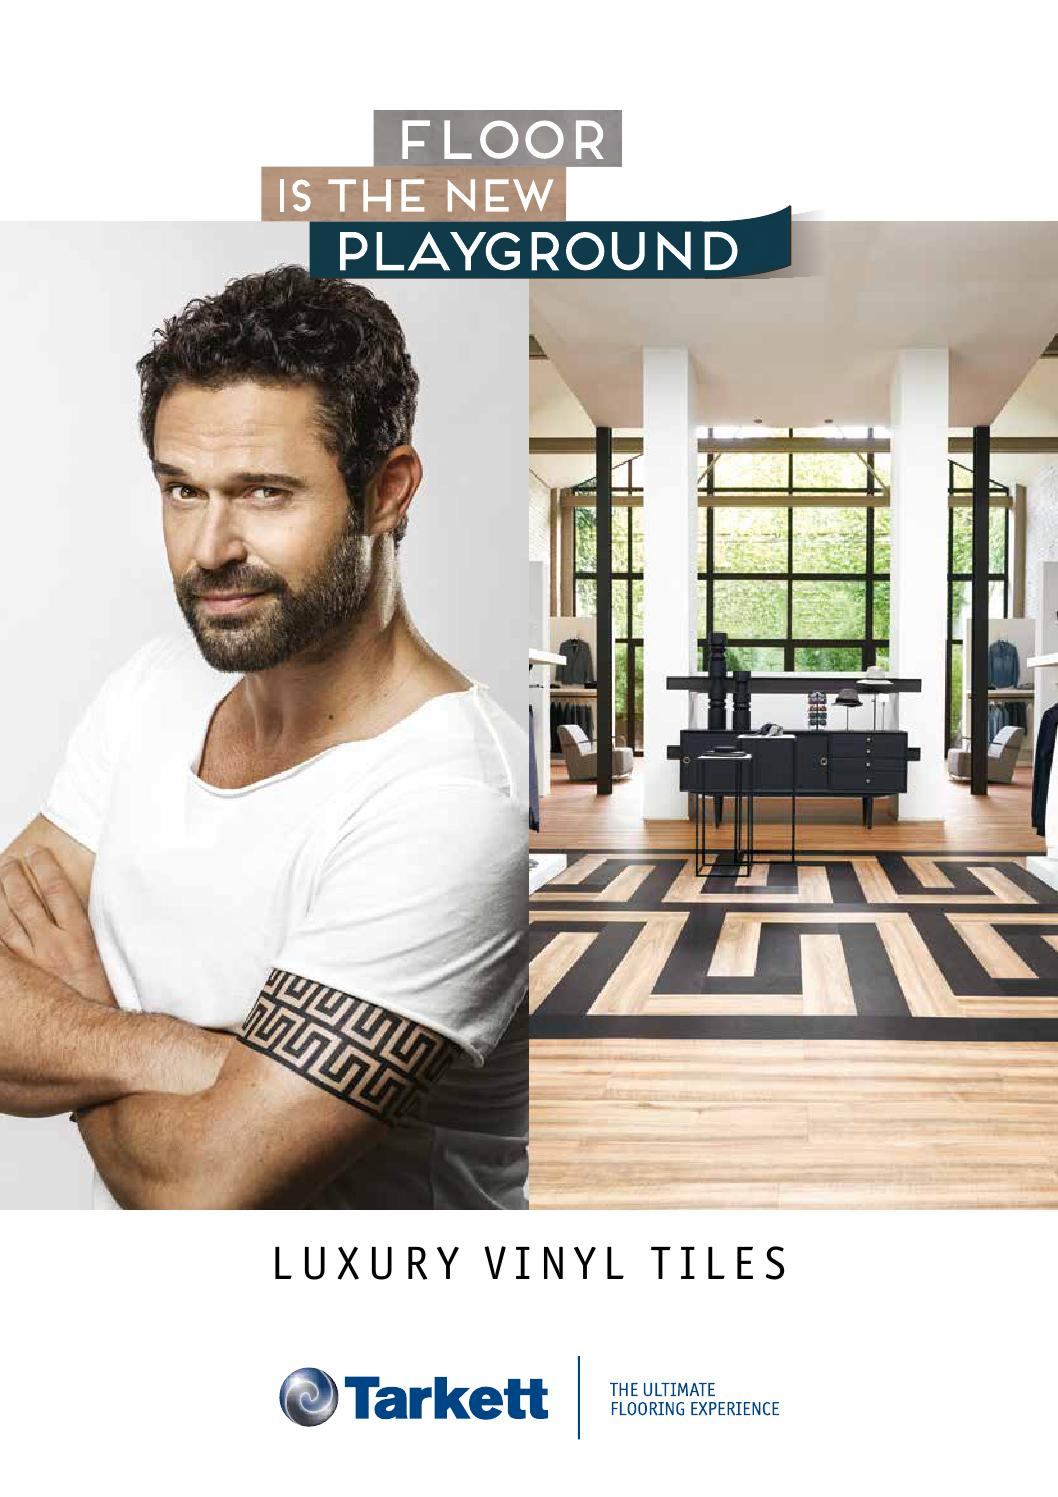 Tarkett Holding Gmbh Tarkett - Luxury Vinyl Tiles By Tarkett France - Issuu